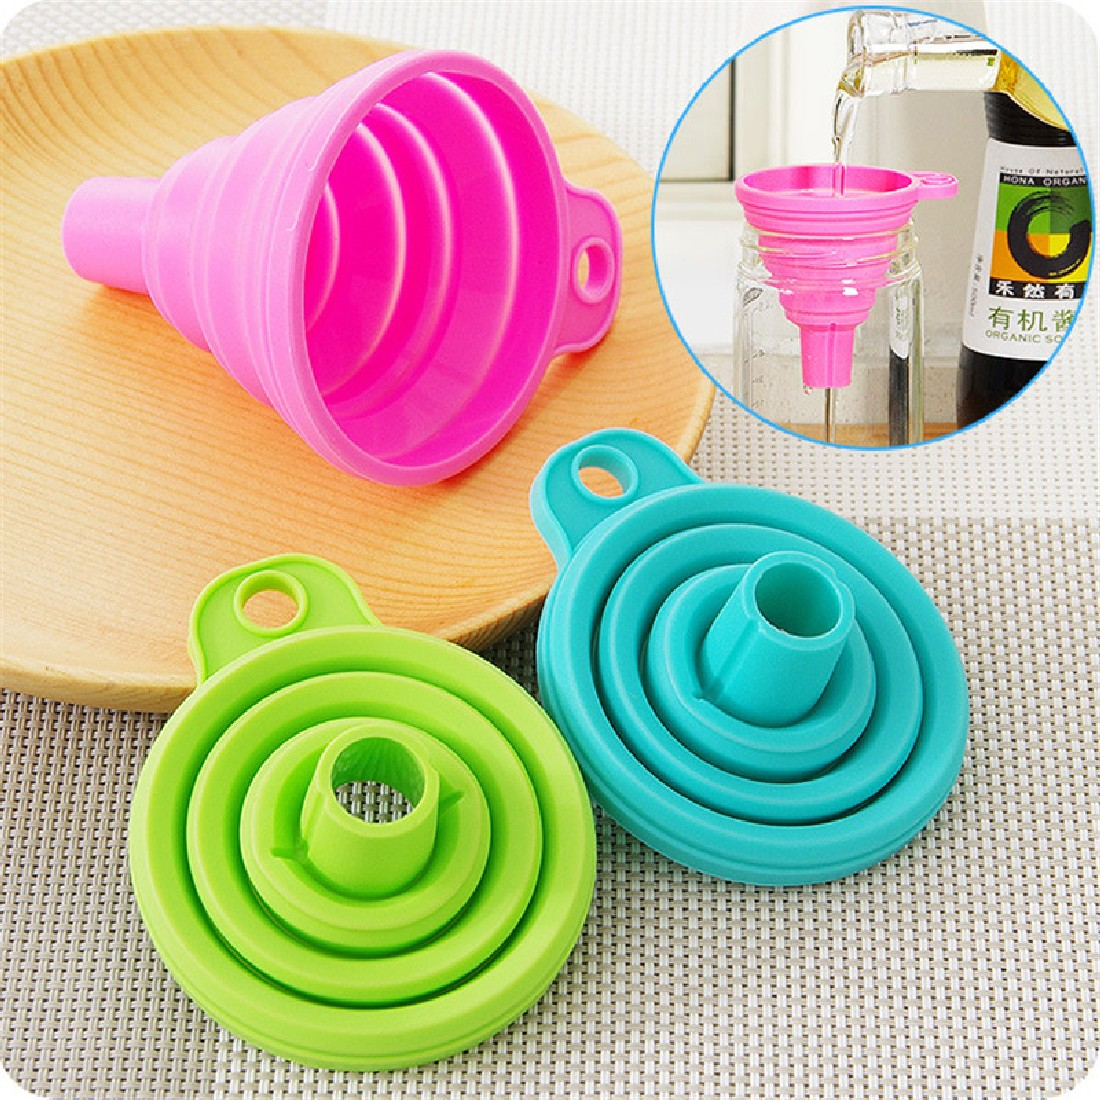 Useful Collapsible Style Funnel Hopper Protable Mini <font><b>Silicone</b></font> Gel Foldable <font><b>Kitchen</b></font> Cooking <font><b>Tools</b></font> Accessories Gadgets image